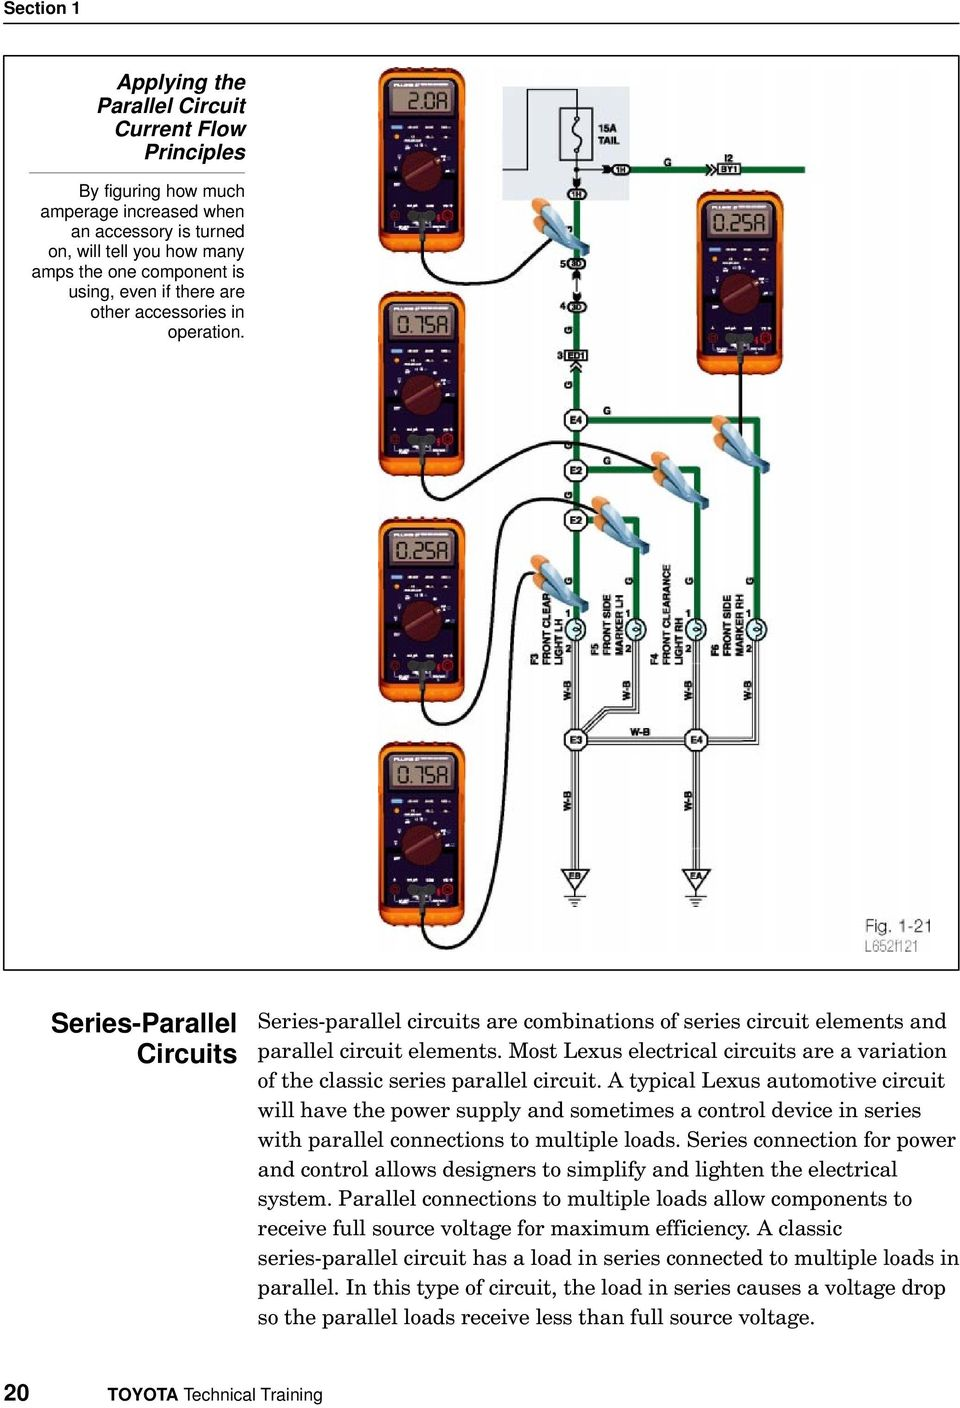 Electrical Circuit Theory Pdf Solenoid Valve Diagram Automotivecircuit Most Lexus Circuits Are A Variation Of The Classic Series Parallel